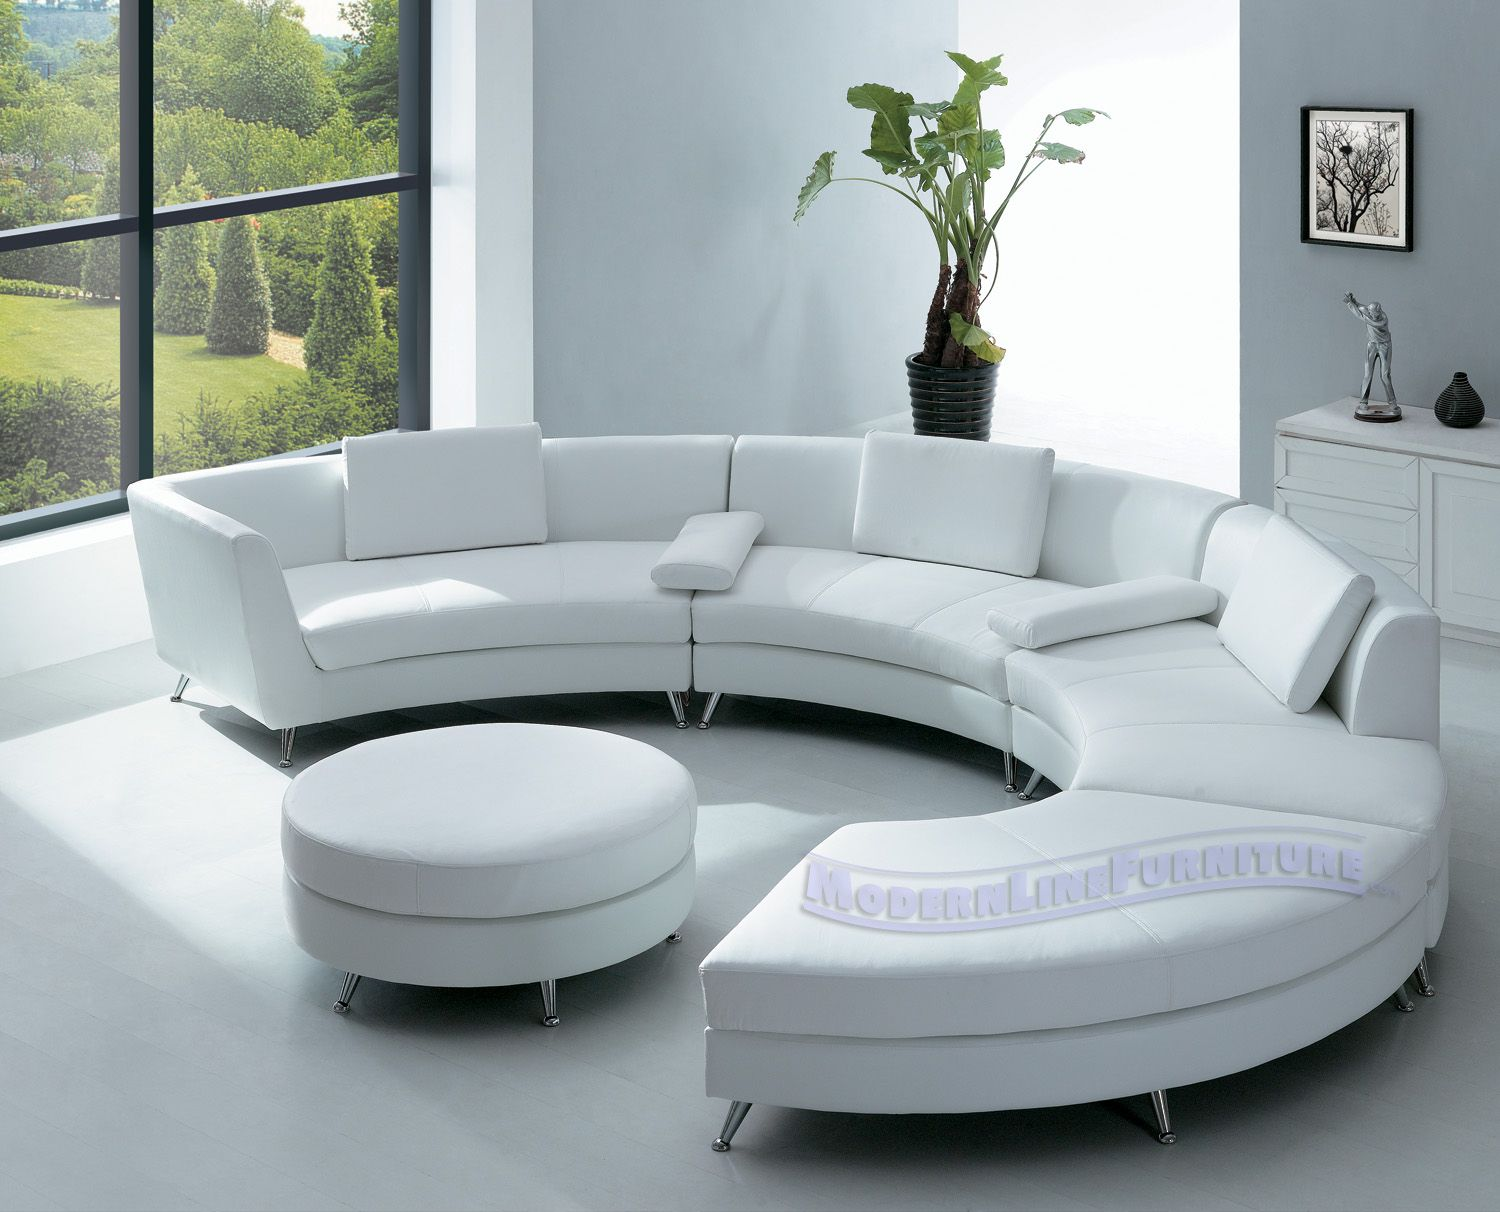 Furniture Fantastic Modern Furniture Glasgow With Modern Furniture House New Living Room With Modern Furniture Rundes Sofa Wohnzimmer Modern Wohnzimmer Sofa